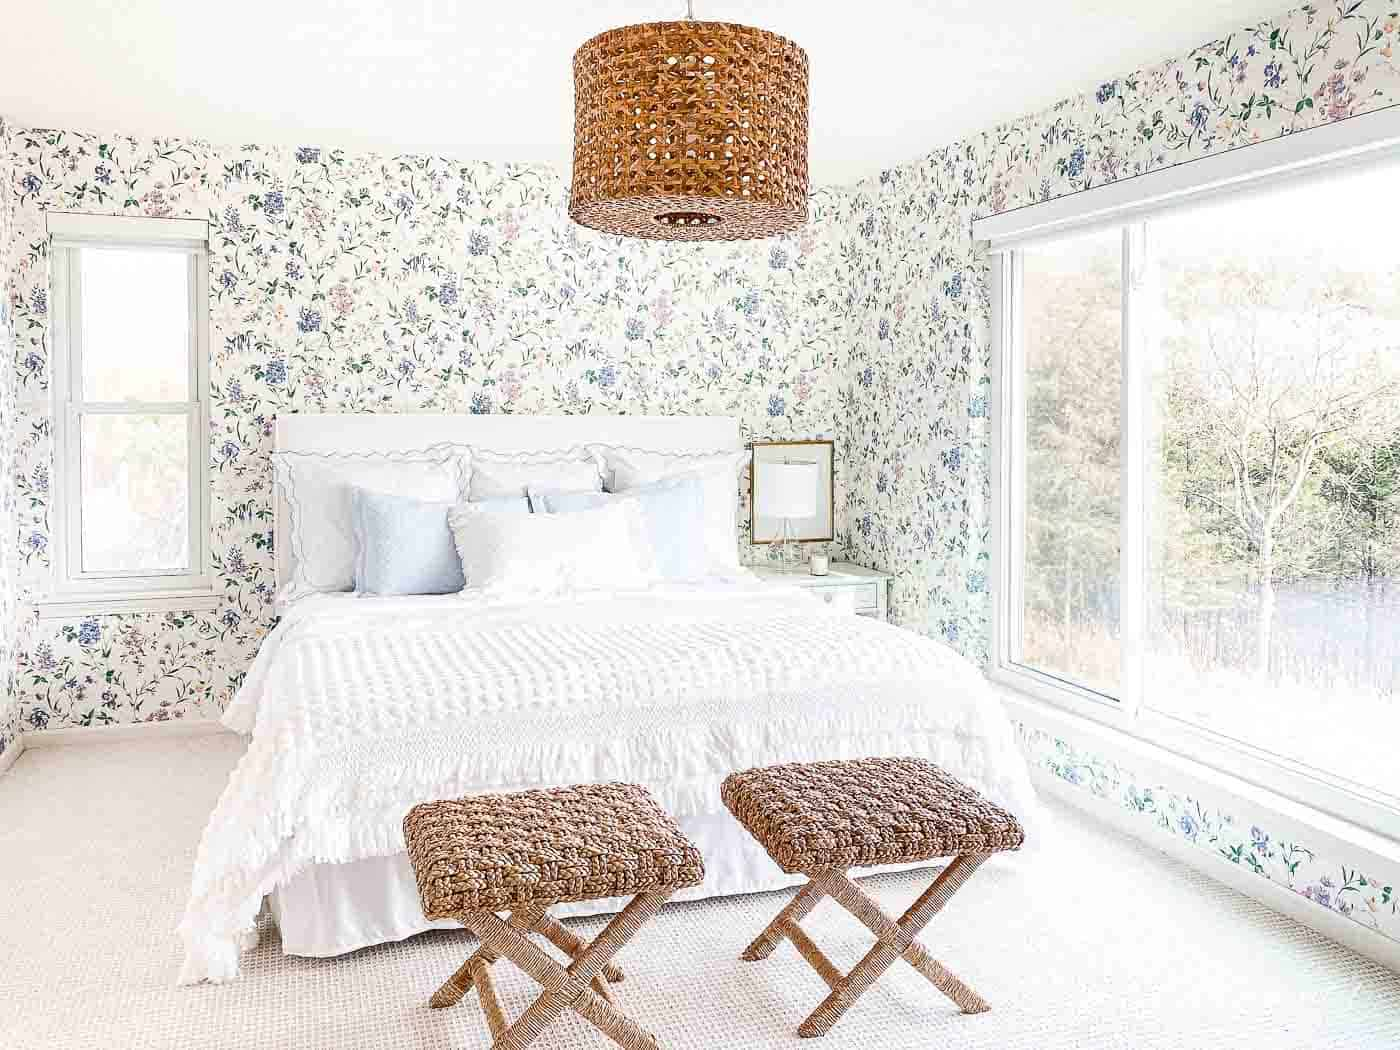 wallpapered bedroom with white slipcovered headboard, white bedding and rattan stools